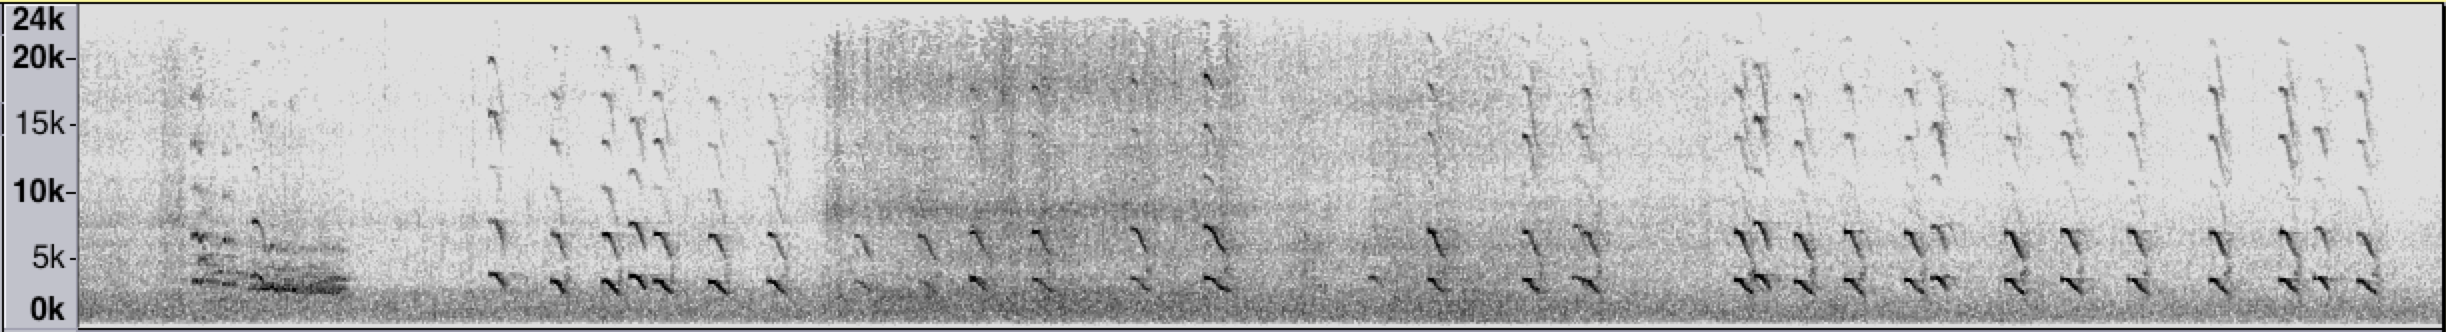 A sonogram shows the piercing,staccato texture of the Arctic Tern's song.